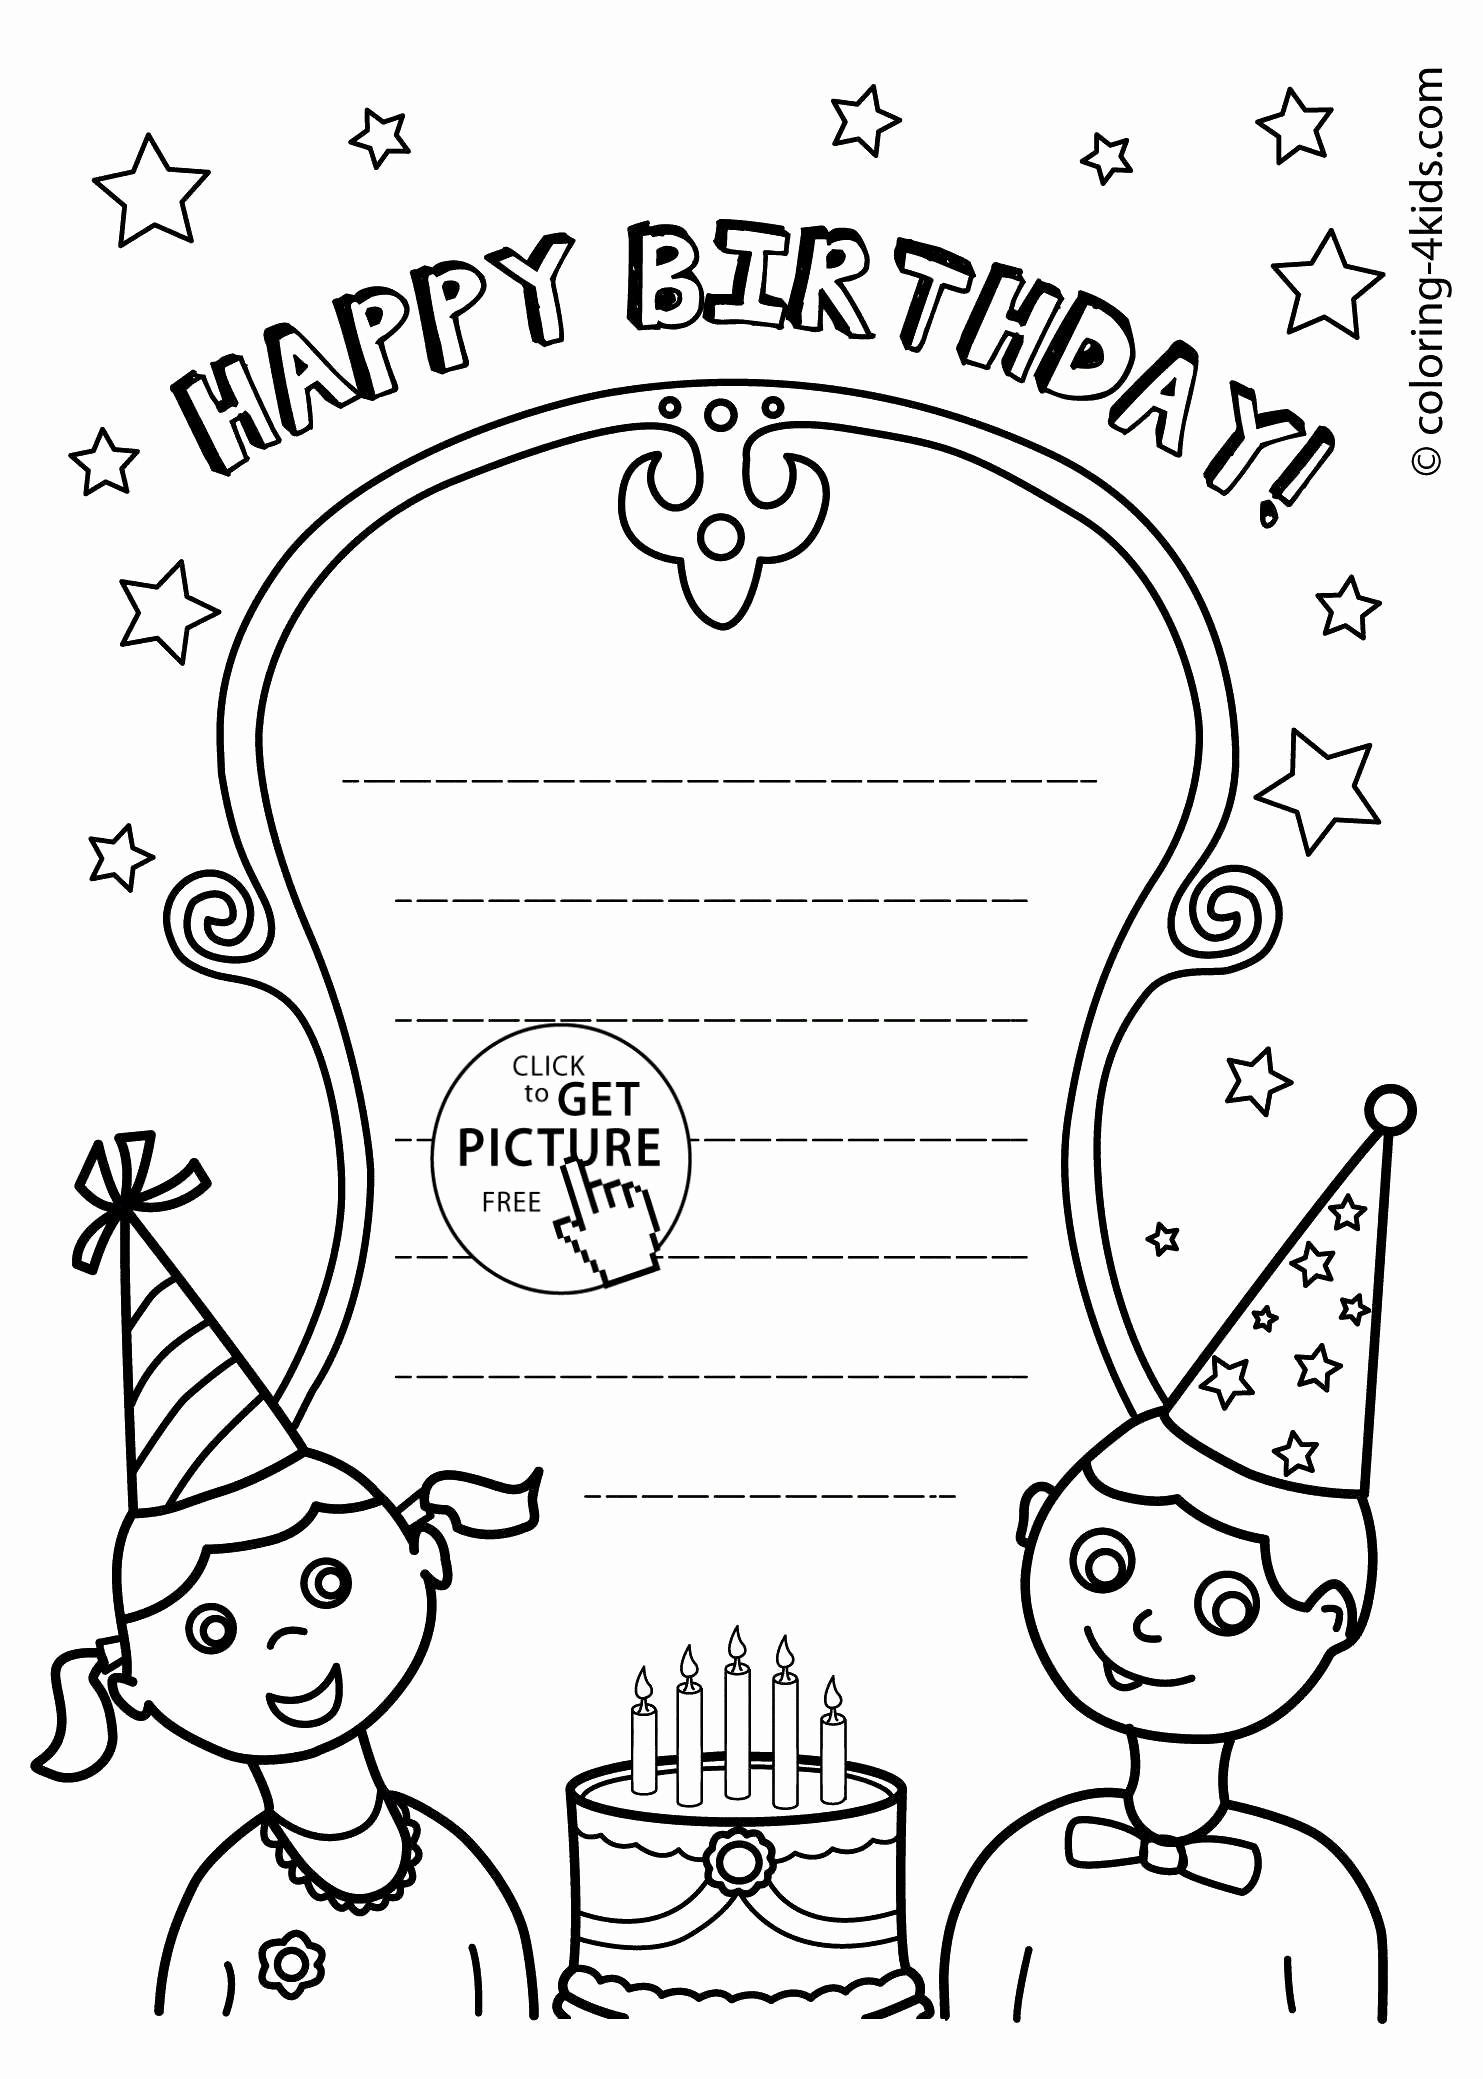 Happy Birthday Coloring Pages For Friends Free Printable Happy Birthday Cards For Friends Luxury Birthday Card